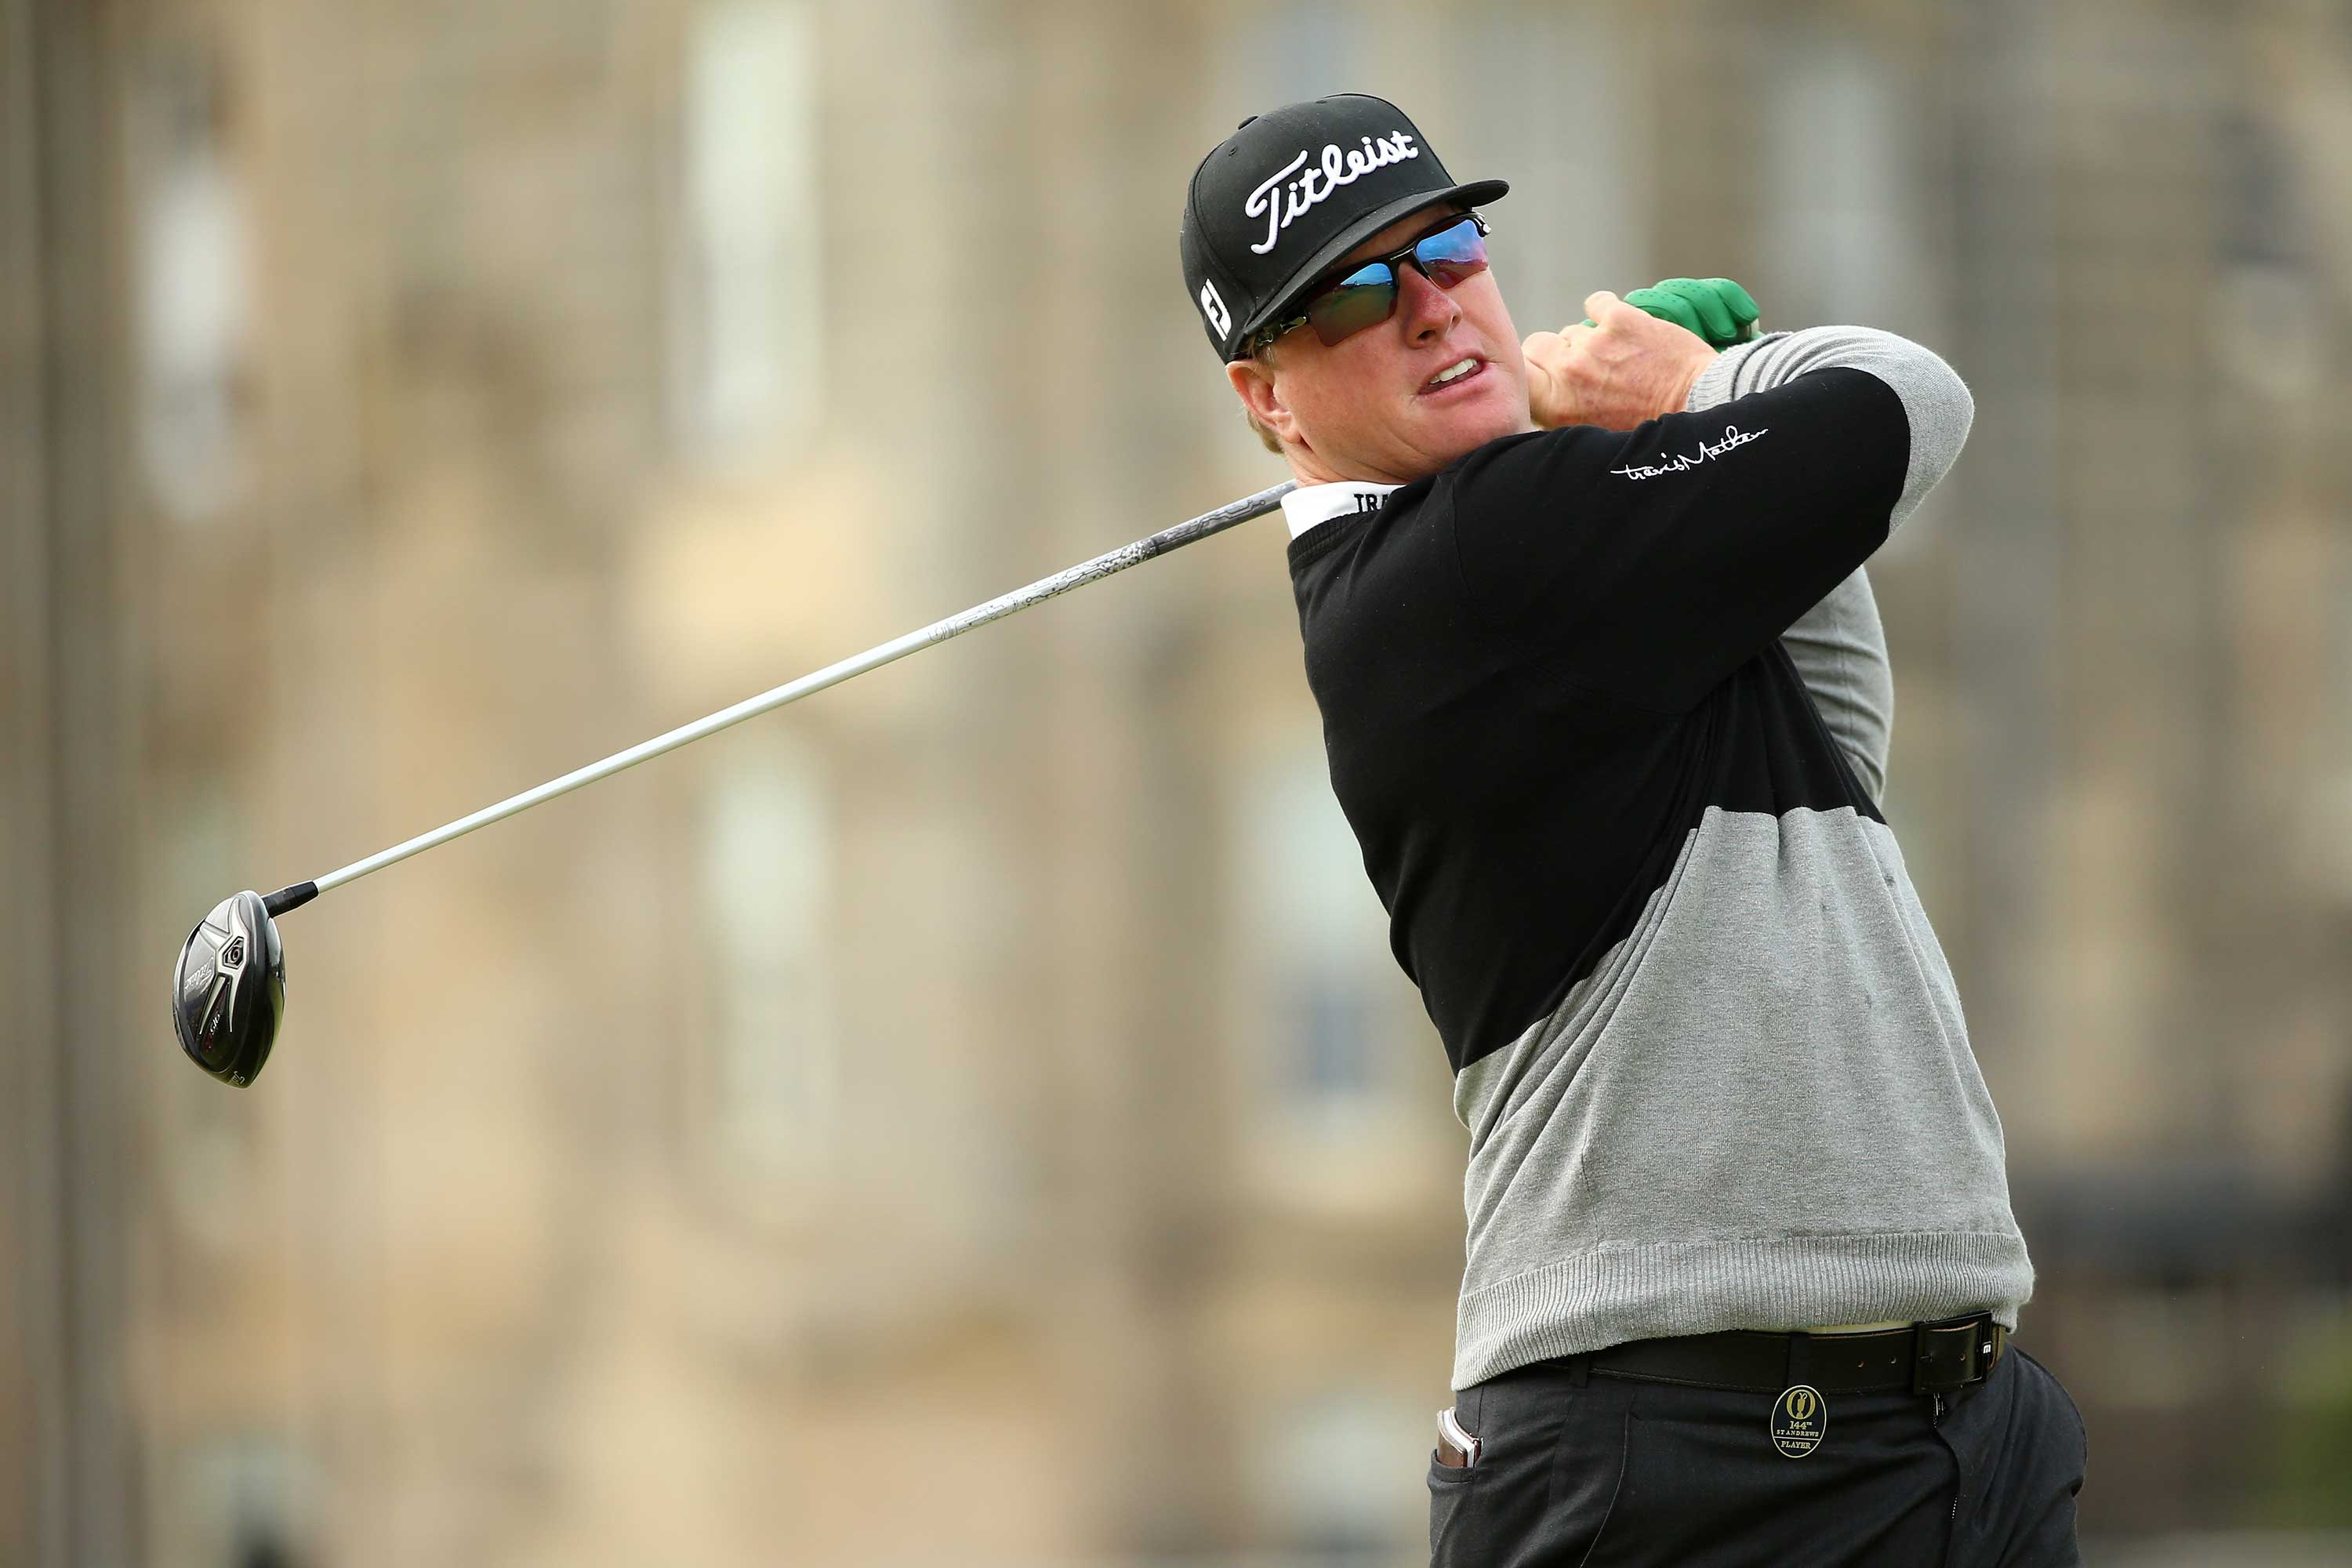 Charley Hoffman landed the OHL Classic at Mayakoba earlier this season (Photo: Getty Images)